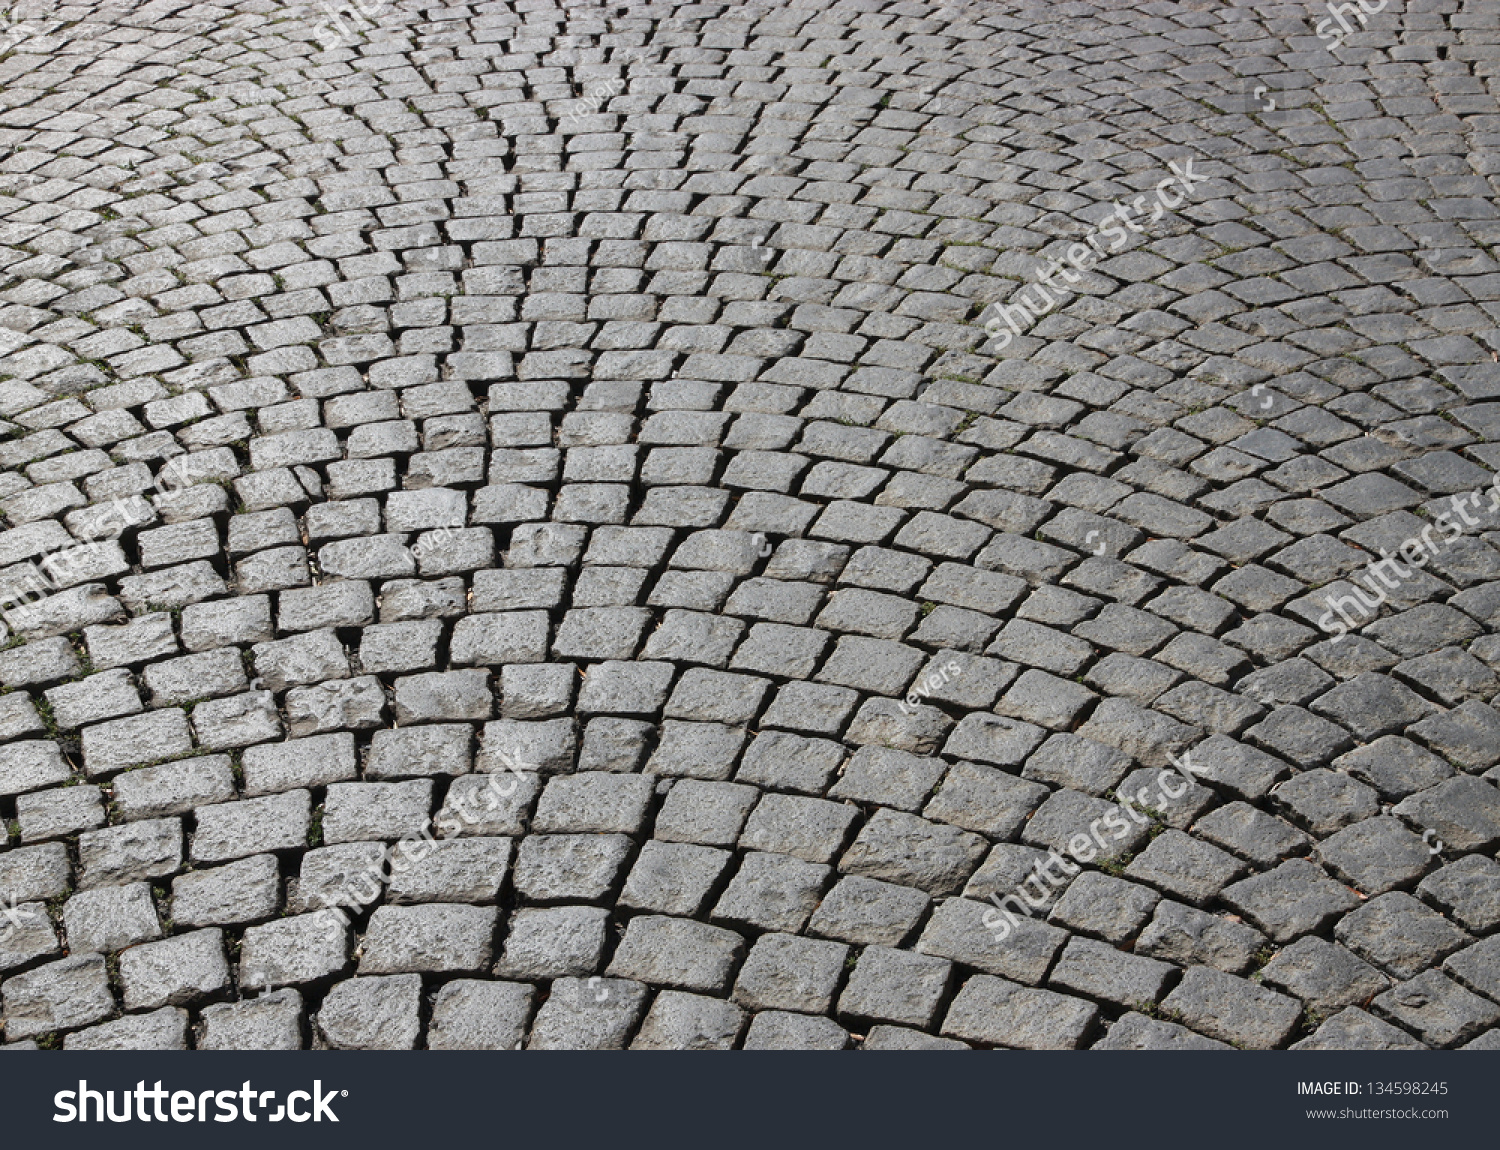 Abstract background of cobblestone pavement stock photo for Cobblestone shutters